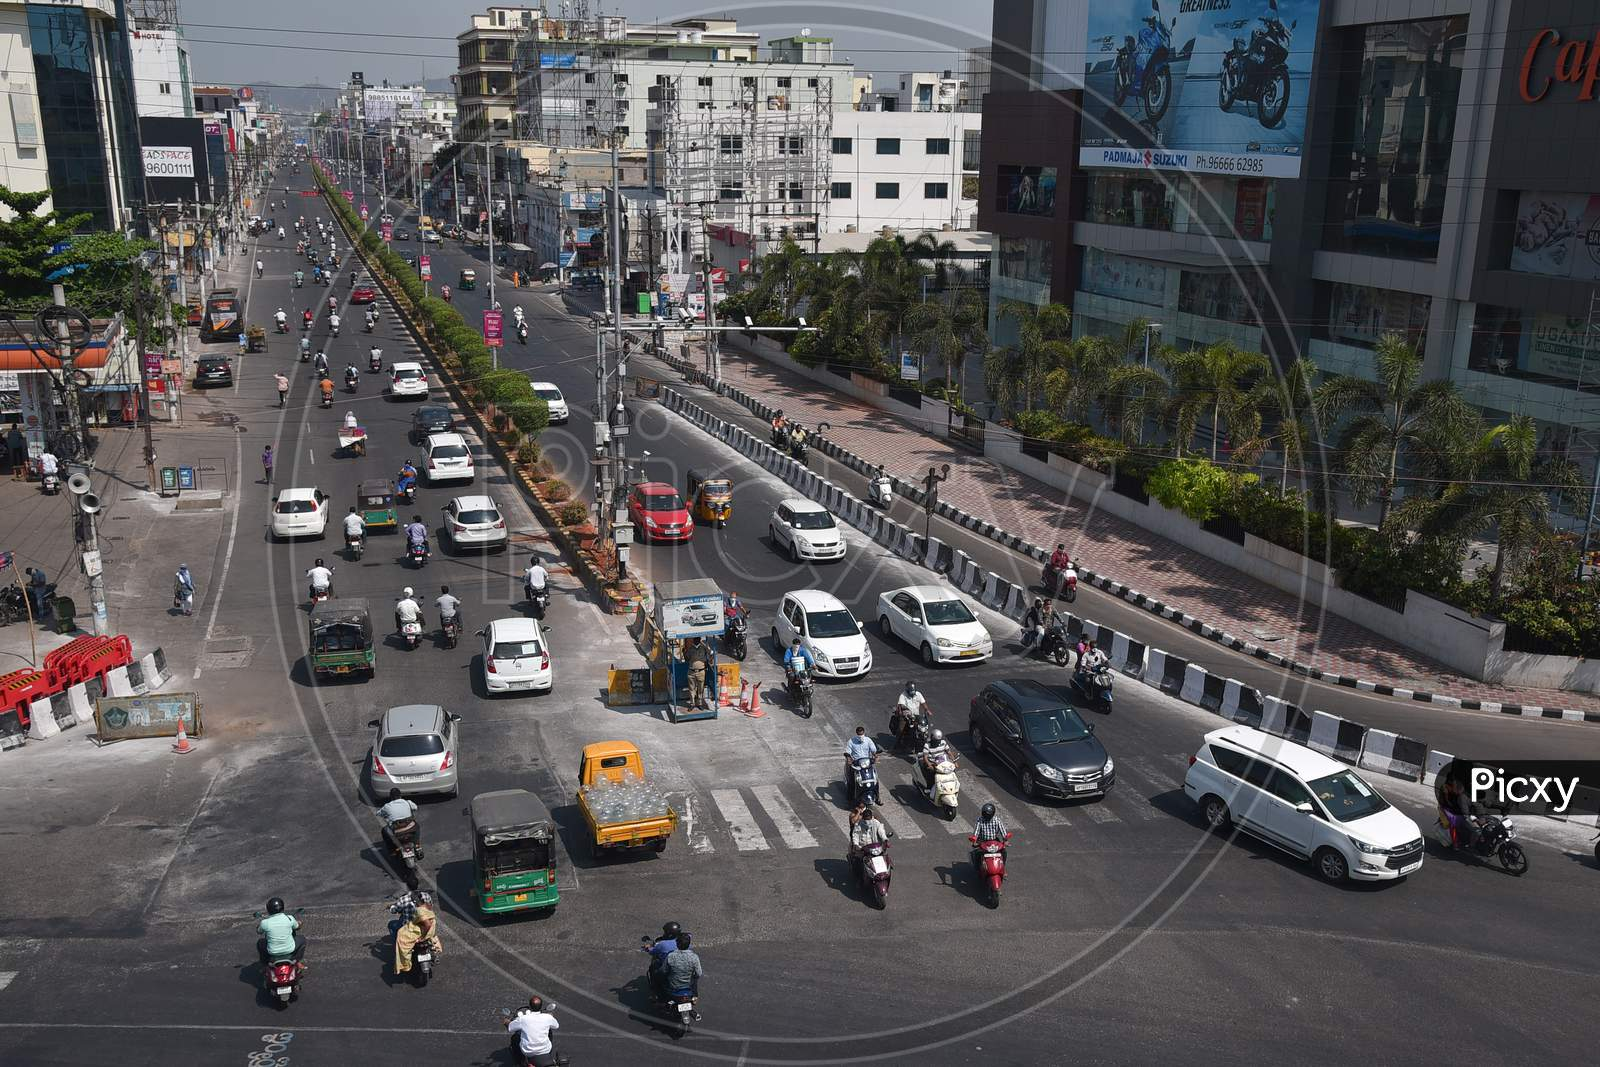 Vehicles Ply At Mg Road, Following The Relaxation Of Restrictions, During The Ongoing Coronavirus Lockdown, In Vijayawada.